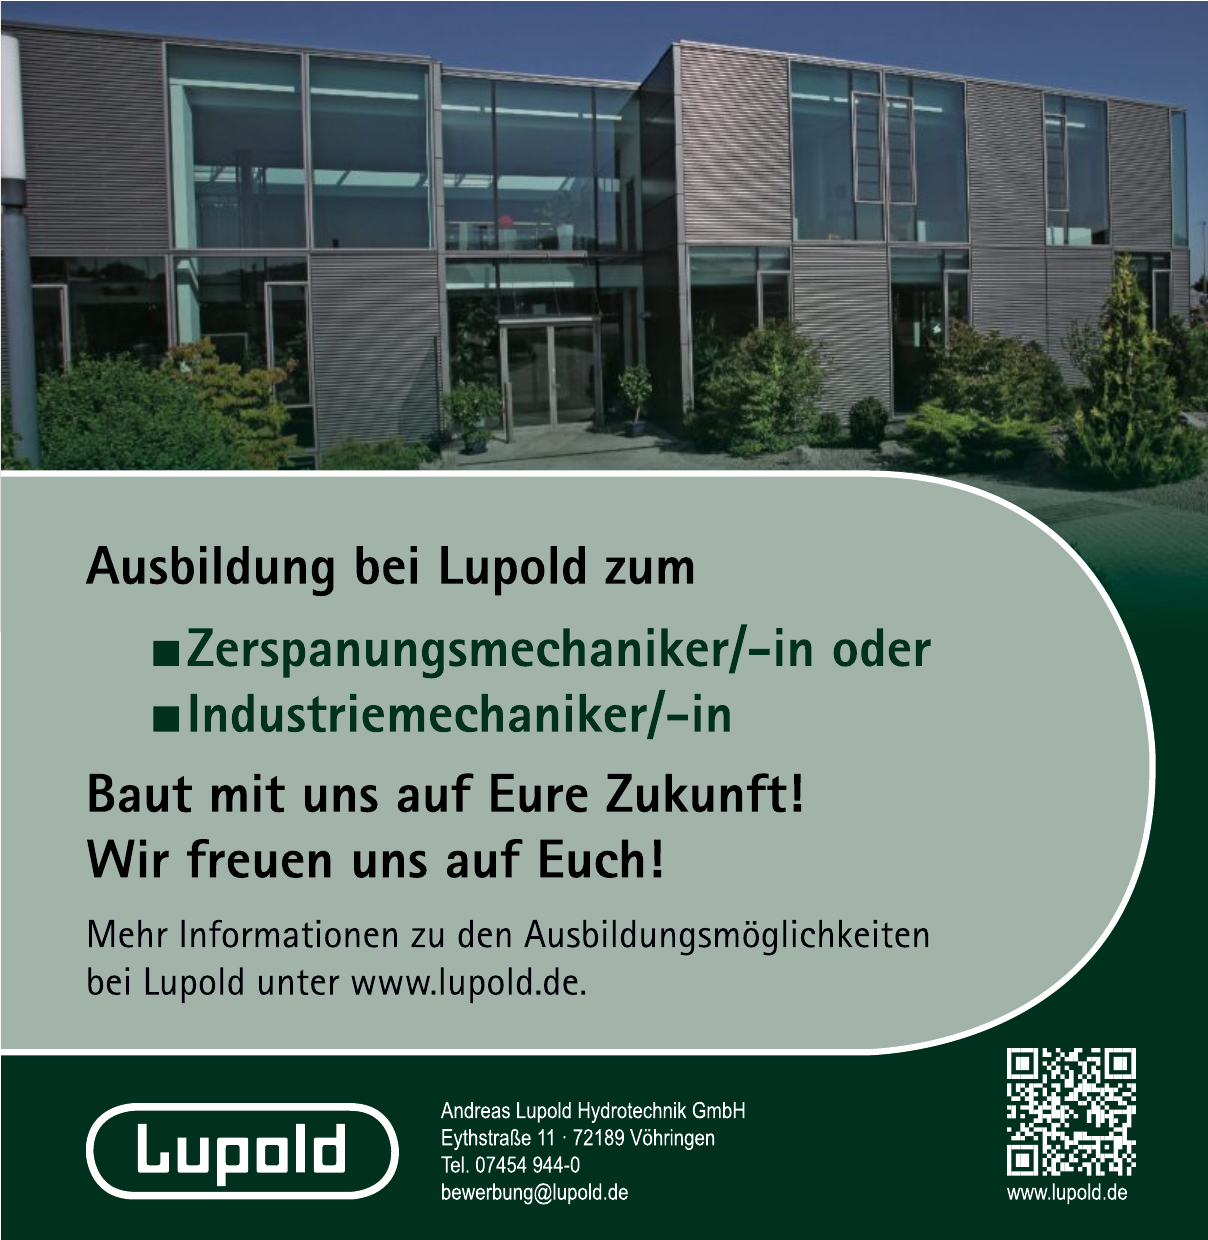 Andreas Lupold Hydrotechnik GmbH